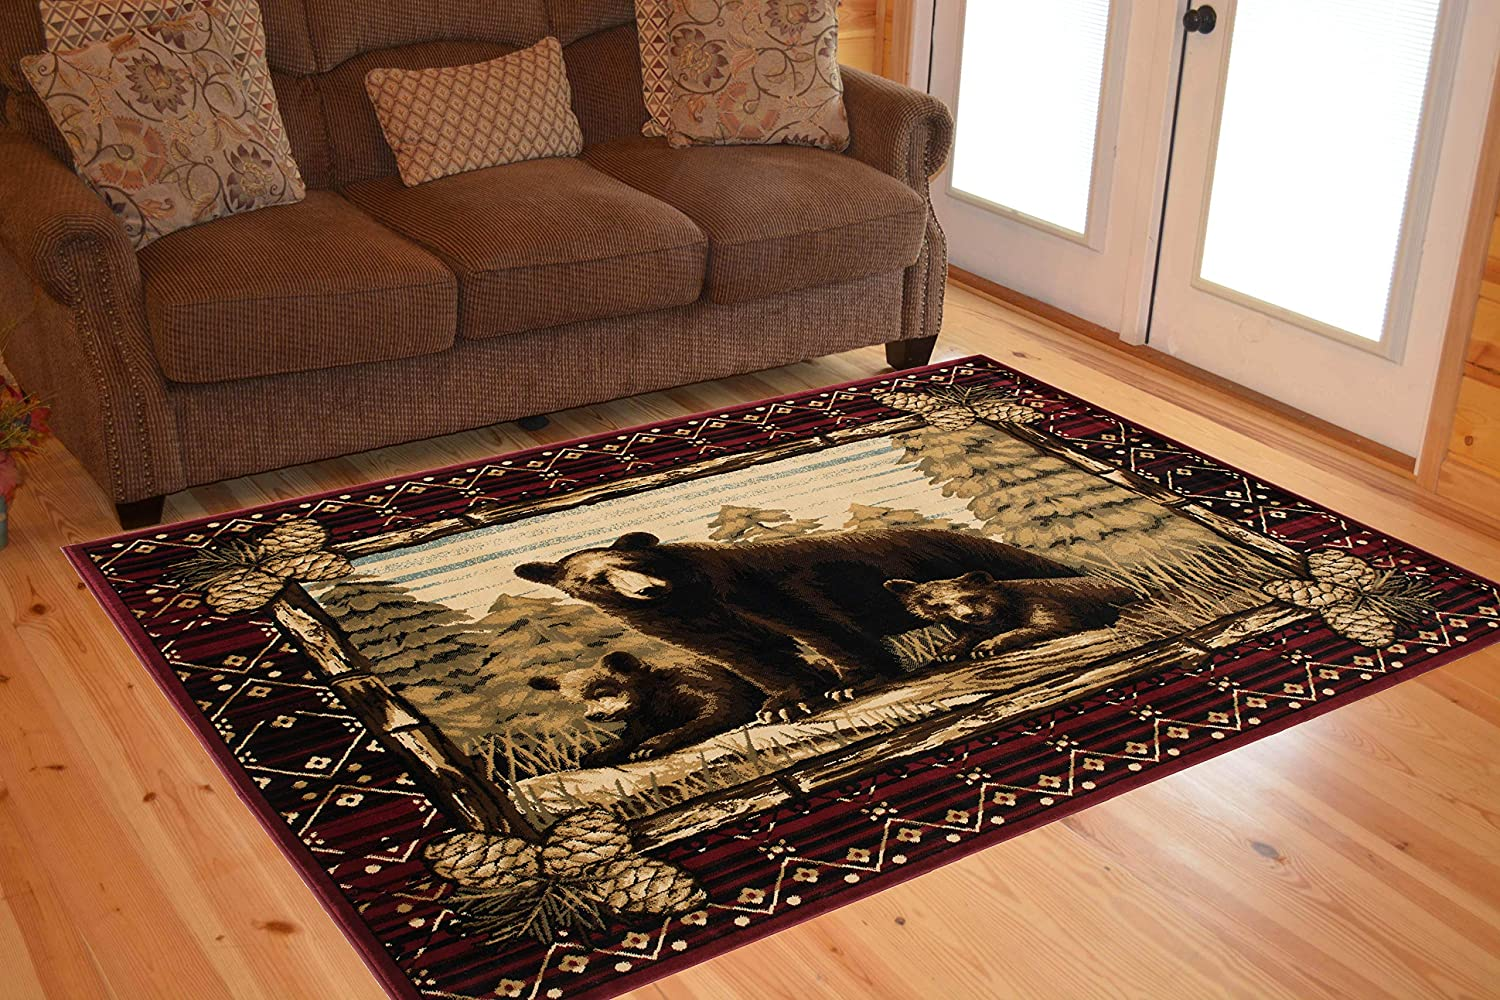 Rug Empire Rustic Lodge Bear Cubs Area Rug, Red